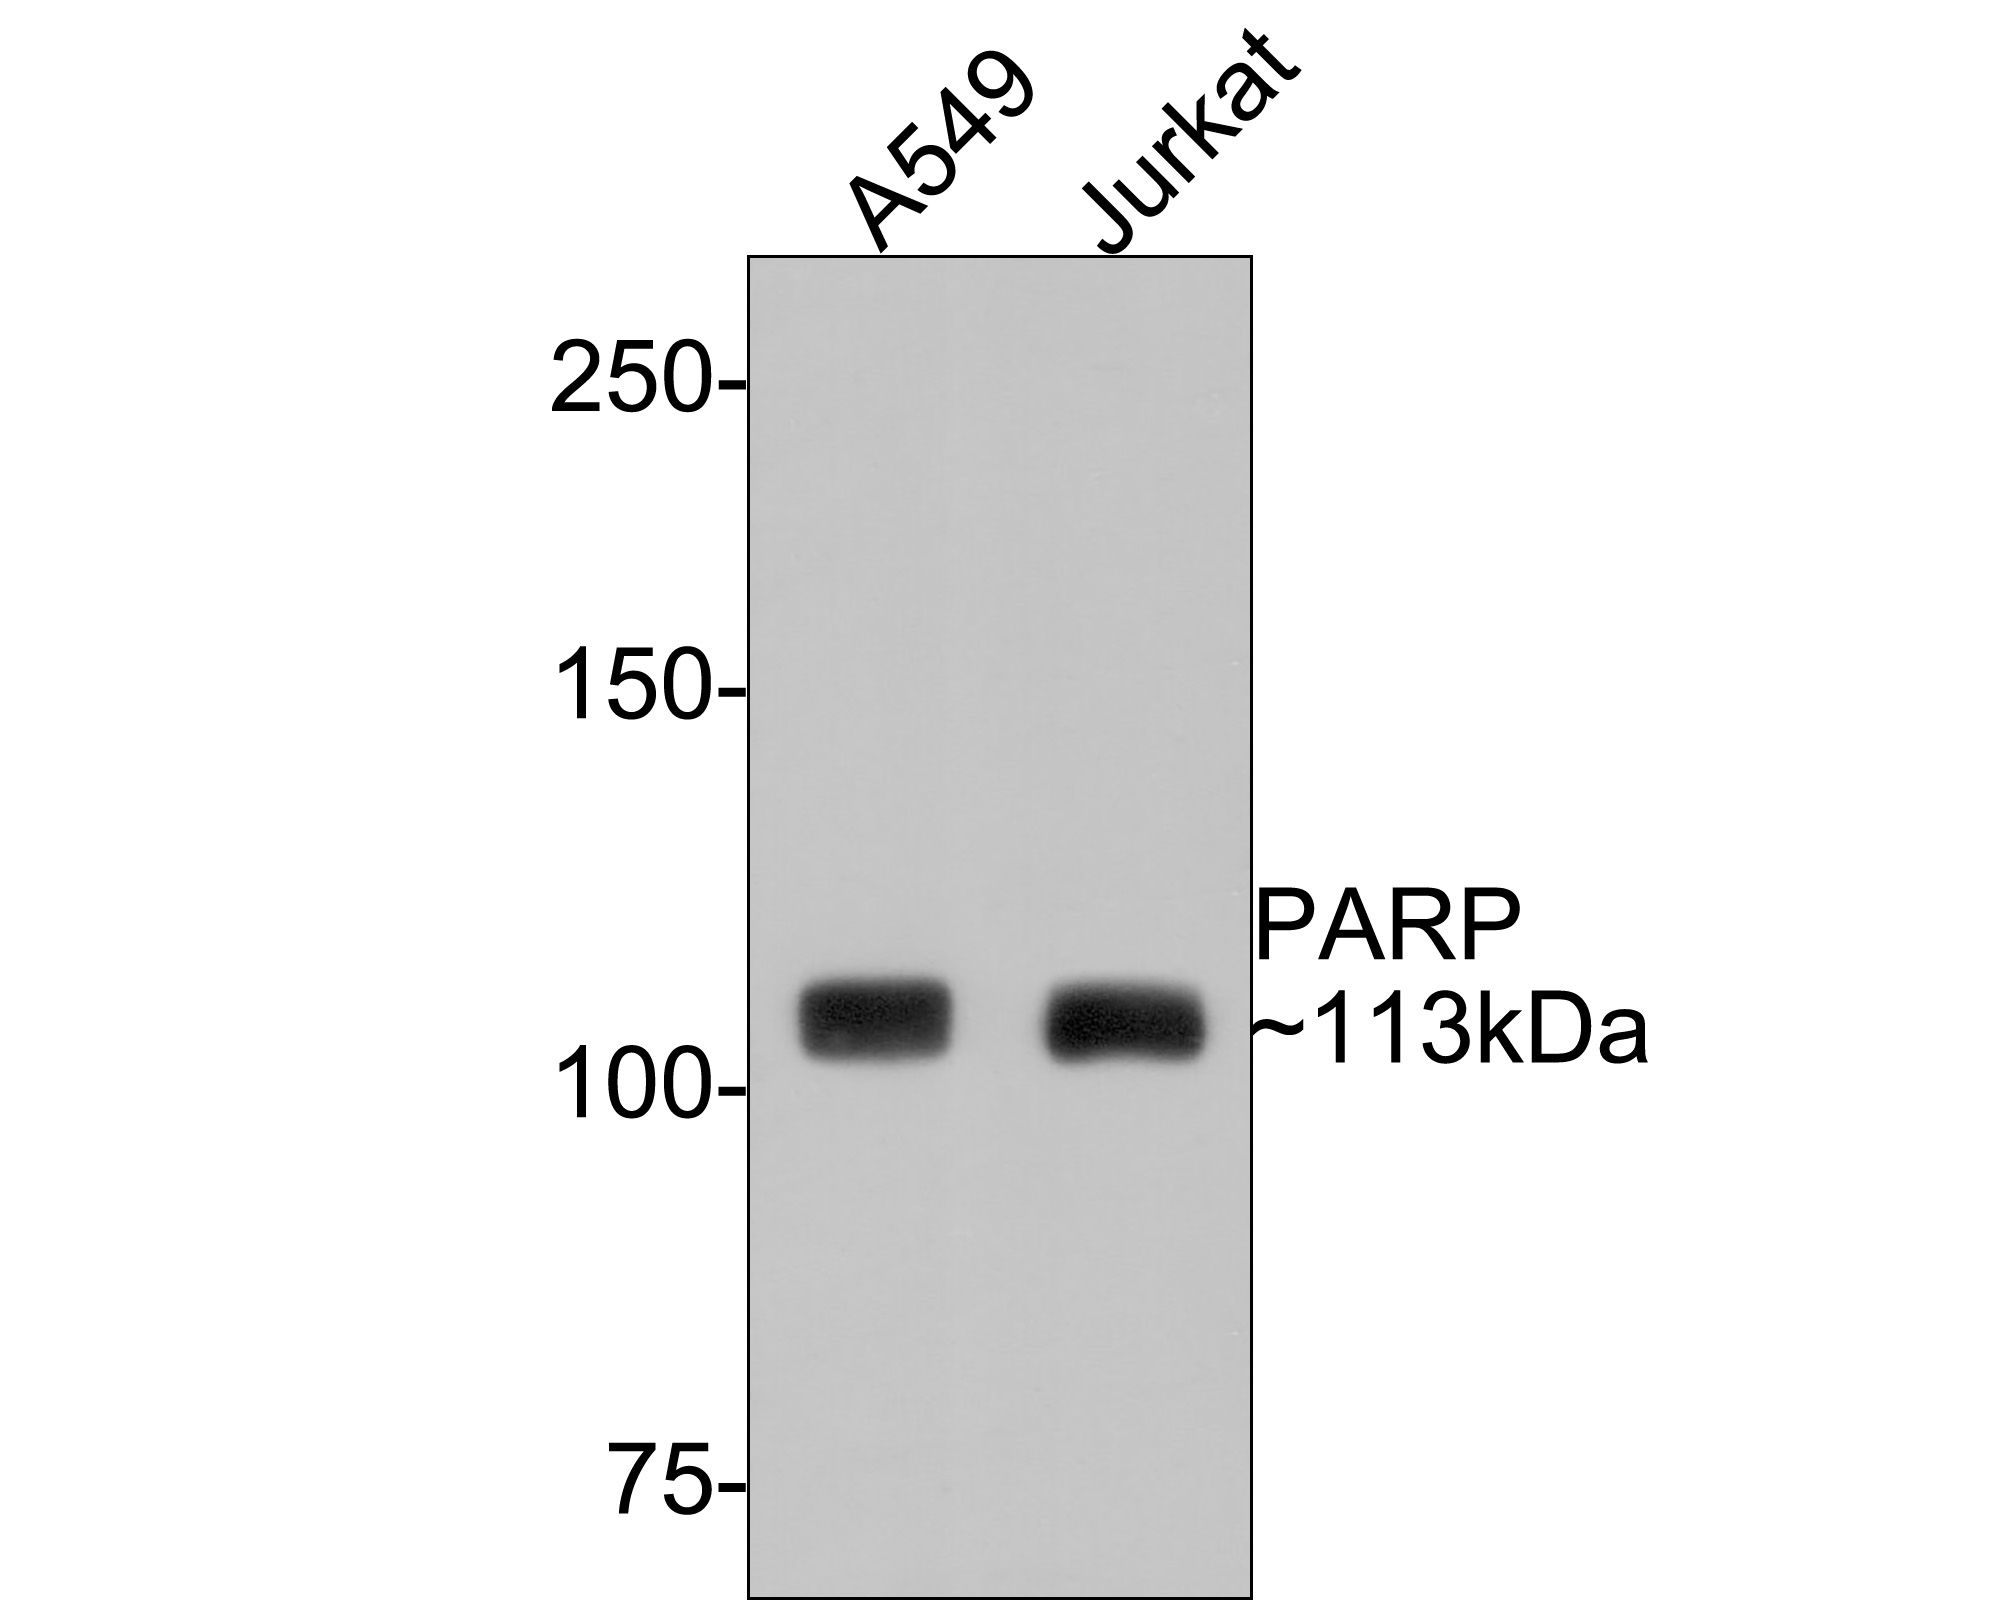 Western blot analysis of PARP on different lysates. Proteins were transferred to a PVDF membrane and blocked with 5% BSA in PBS for 1 hour at room temperature. The primary antibody (ET1608-56, 1/500) was used in 5% BSA at room temperature for 2 hours. Goat Anti-Rabbit IgG - HRP Secondary Antibody (HA1001) at 1:5,000 dilution was used for 1 hour at room temperature.<br />  Positive control: <br />  Lane 1: A549 cell lysate<br />  Lane 2: Jurkat cell lysate<br />  Lane 3: Hela cell lysate